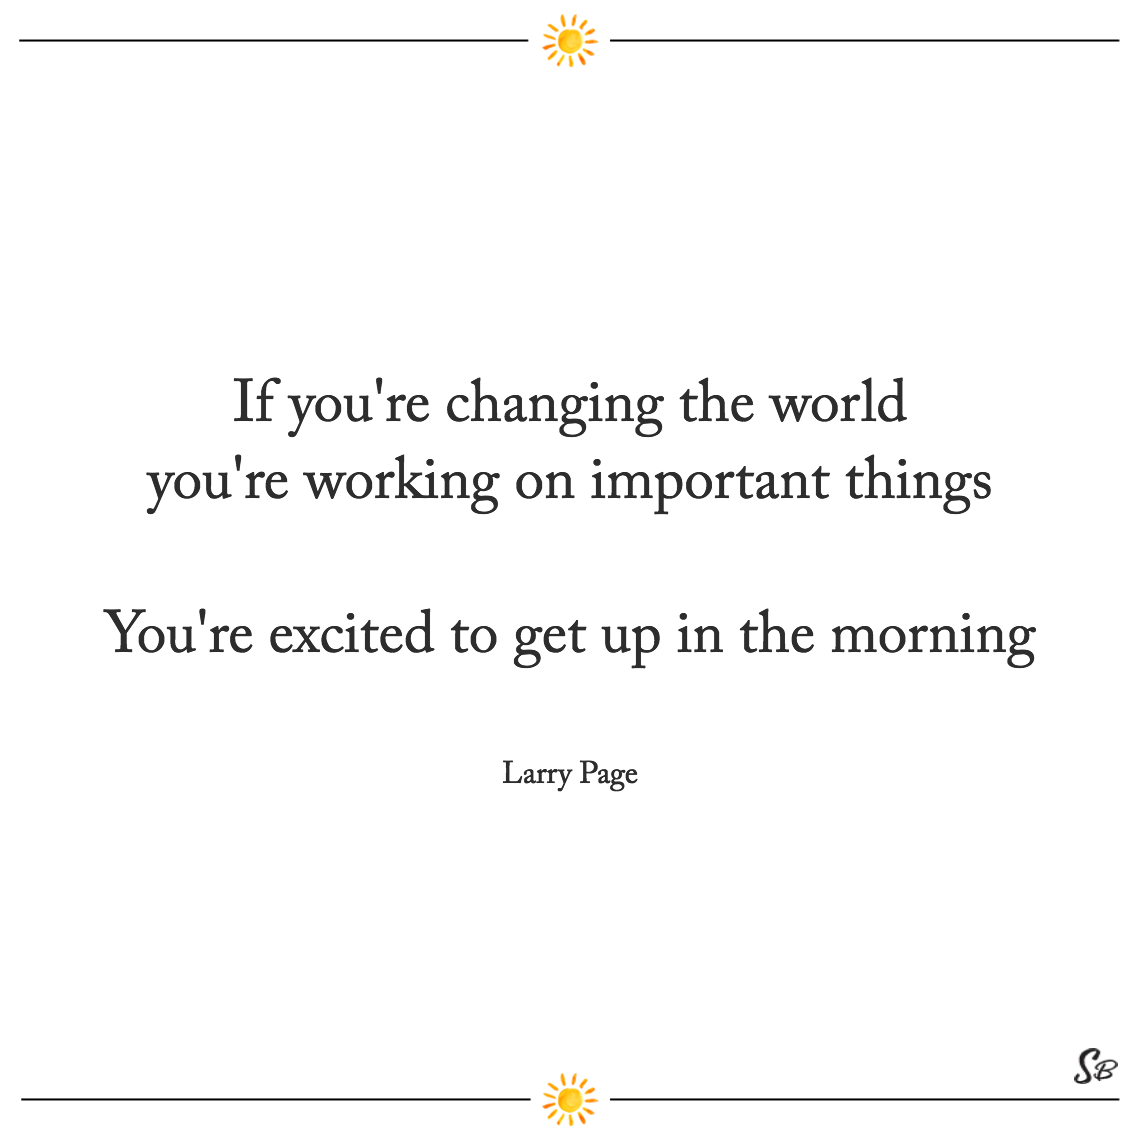 If you're changing the world you're working on important things you're excited to get up in the morning larry page